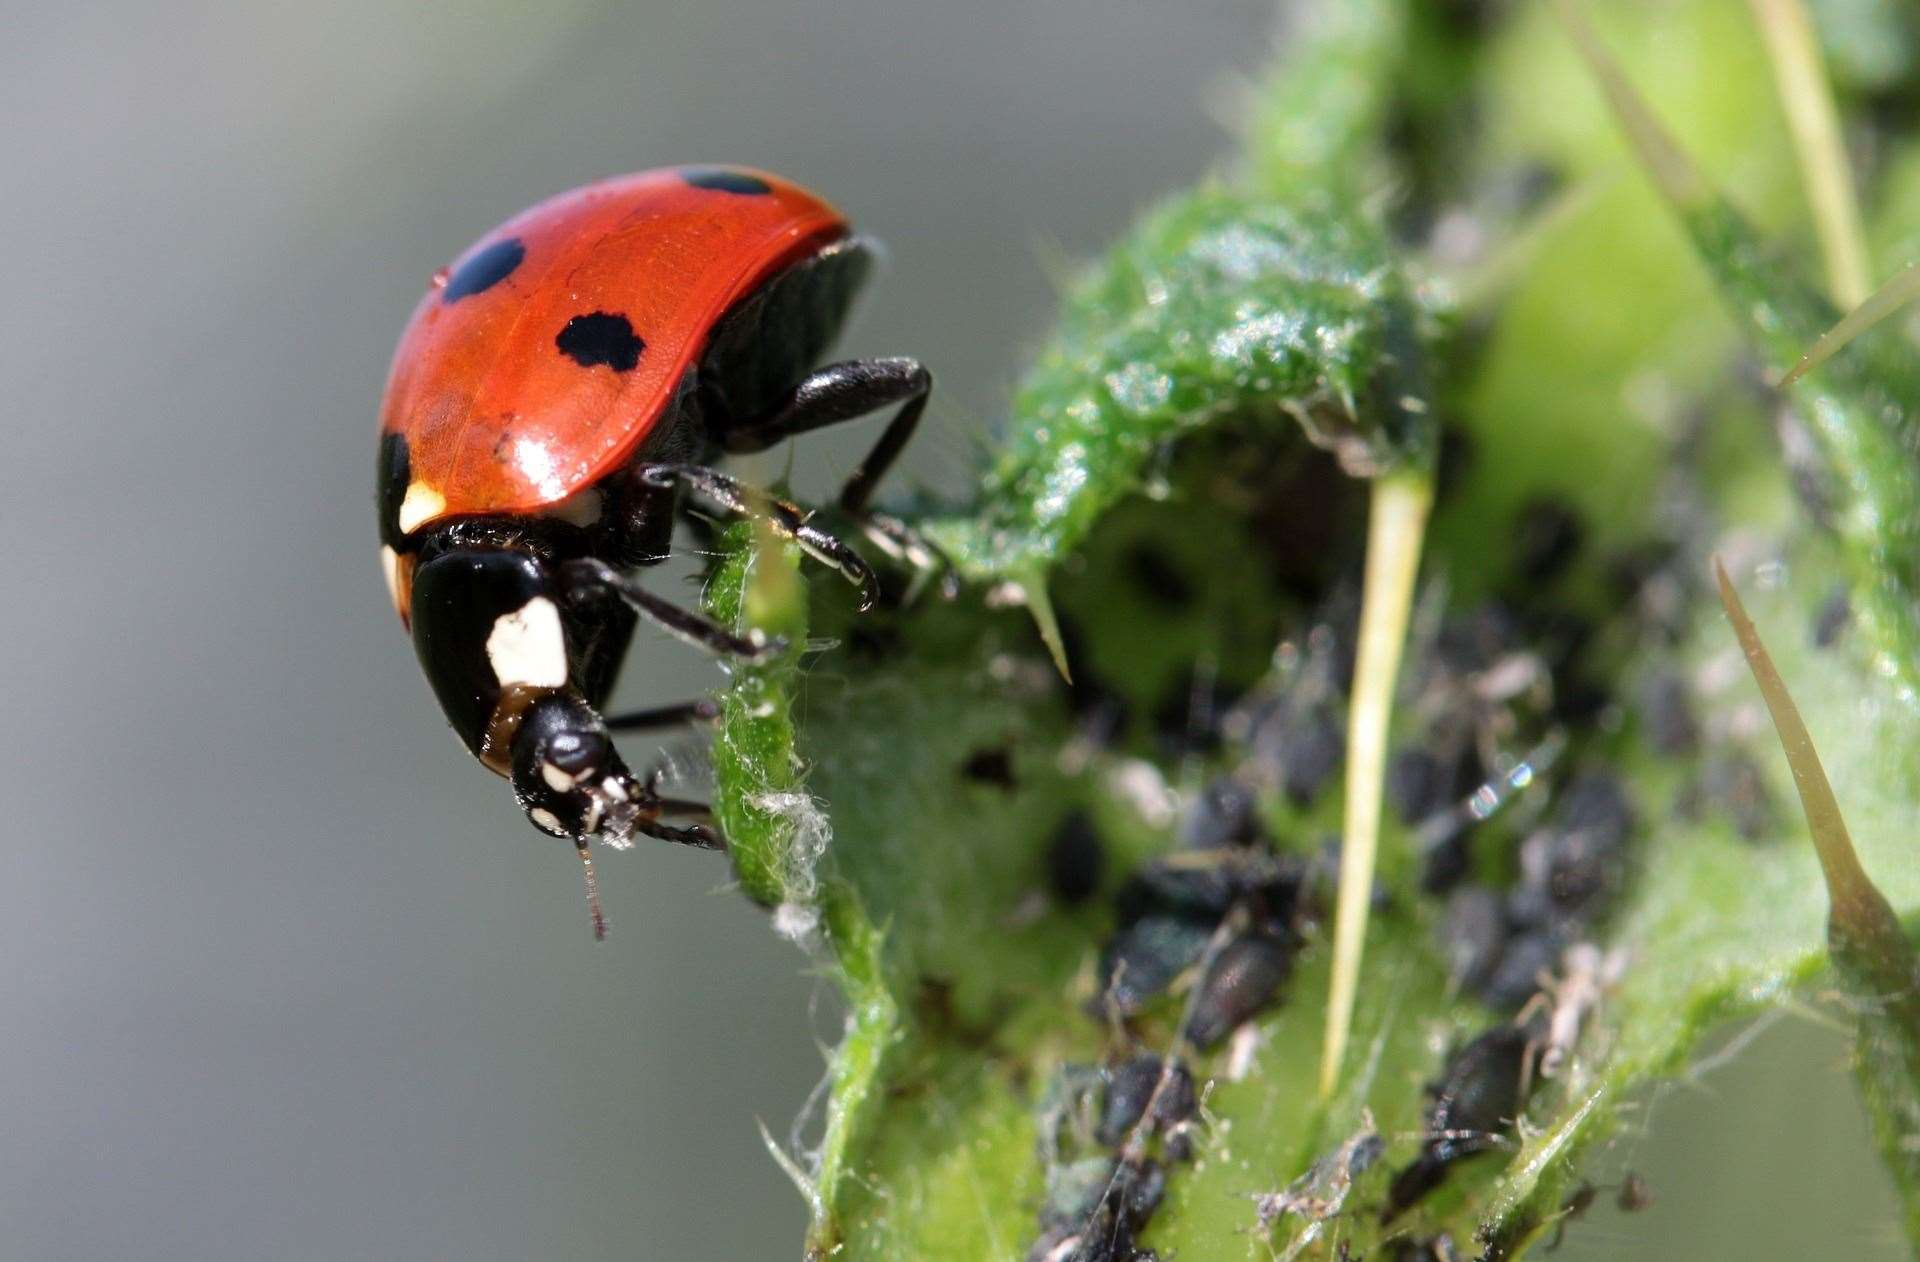 A ladybird eating aphids.